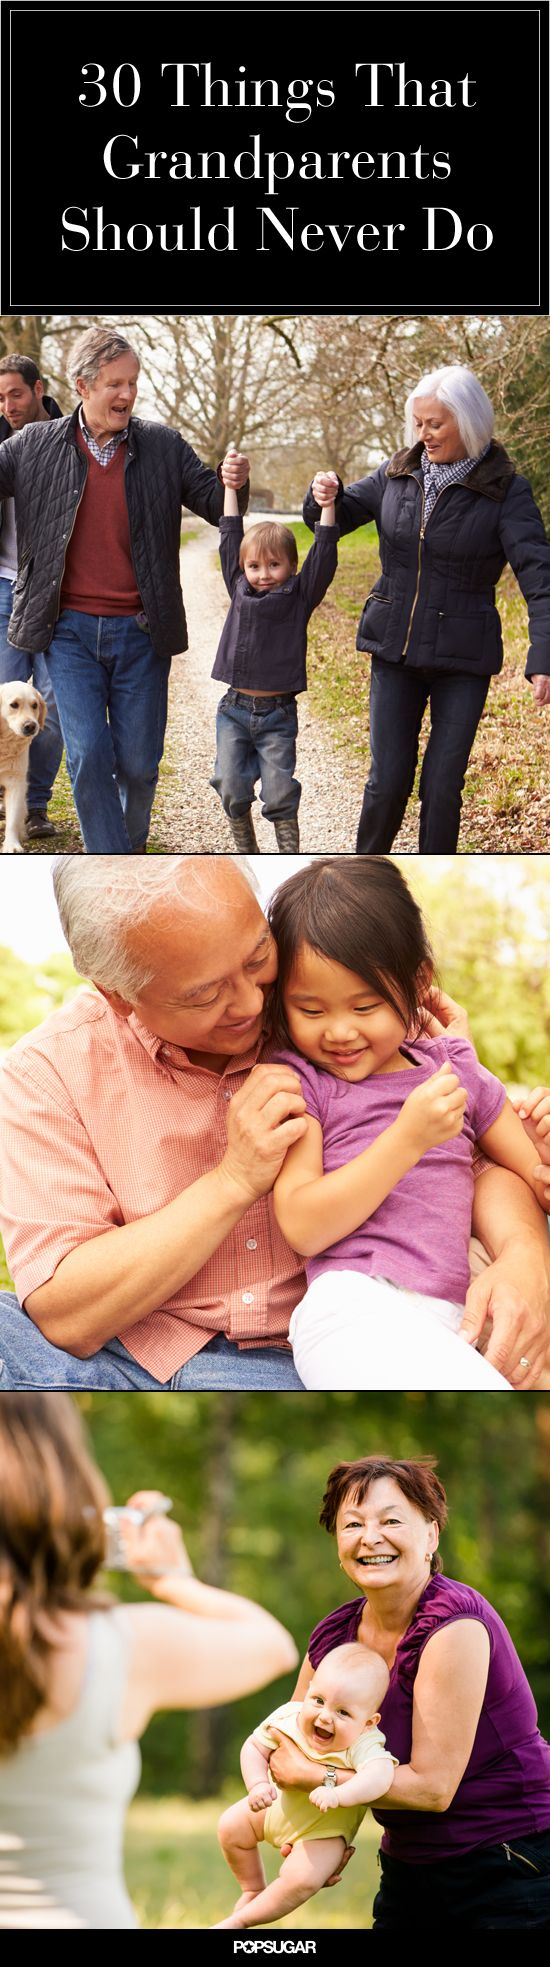 30 Things That Grandparents Should Never Do. #'s 13, 23, & 26 are my mother...such a pity